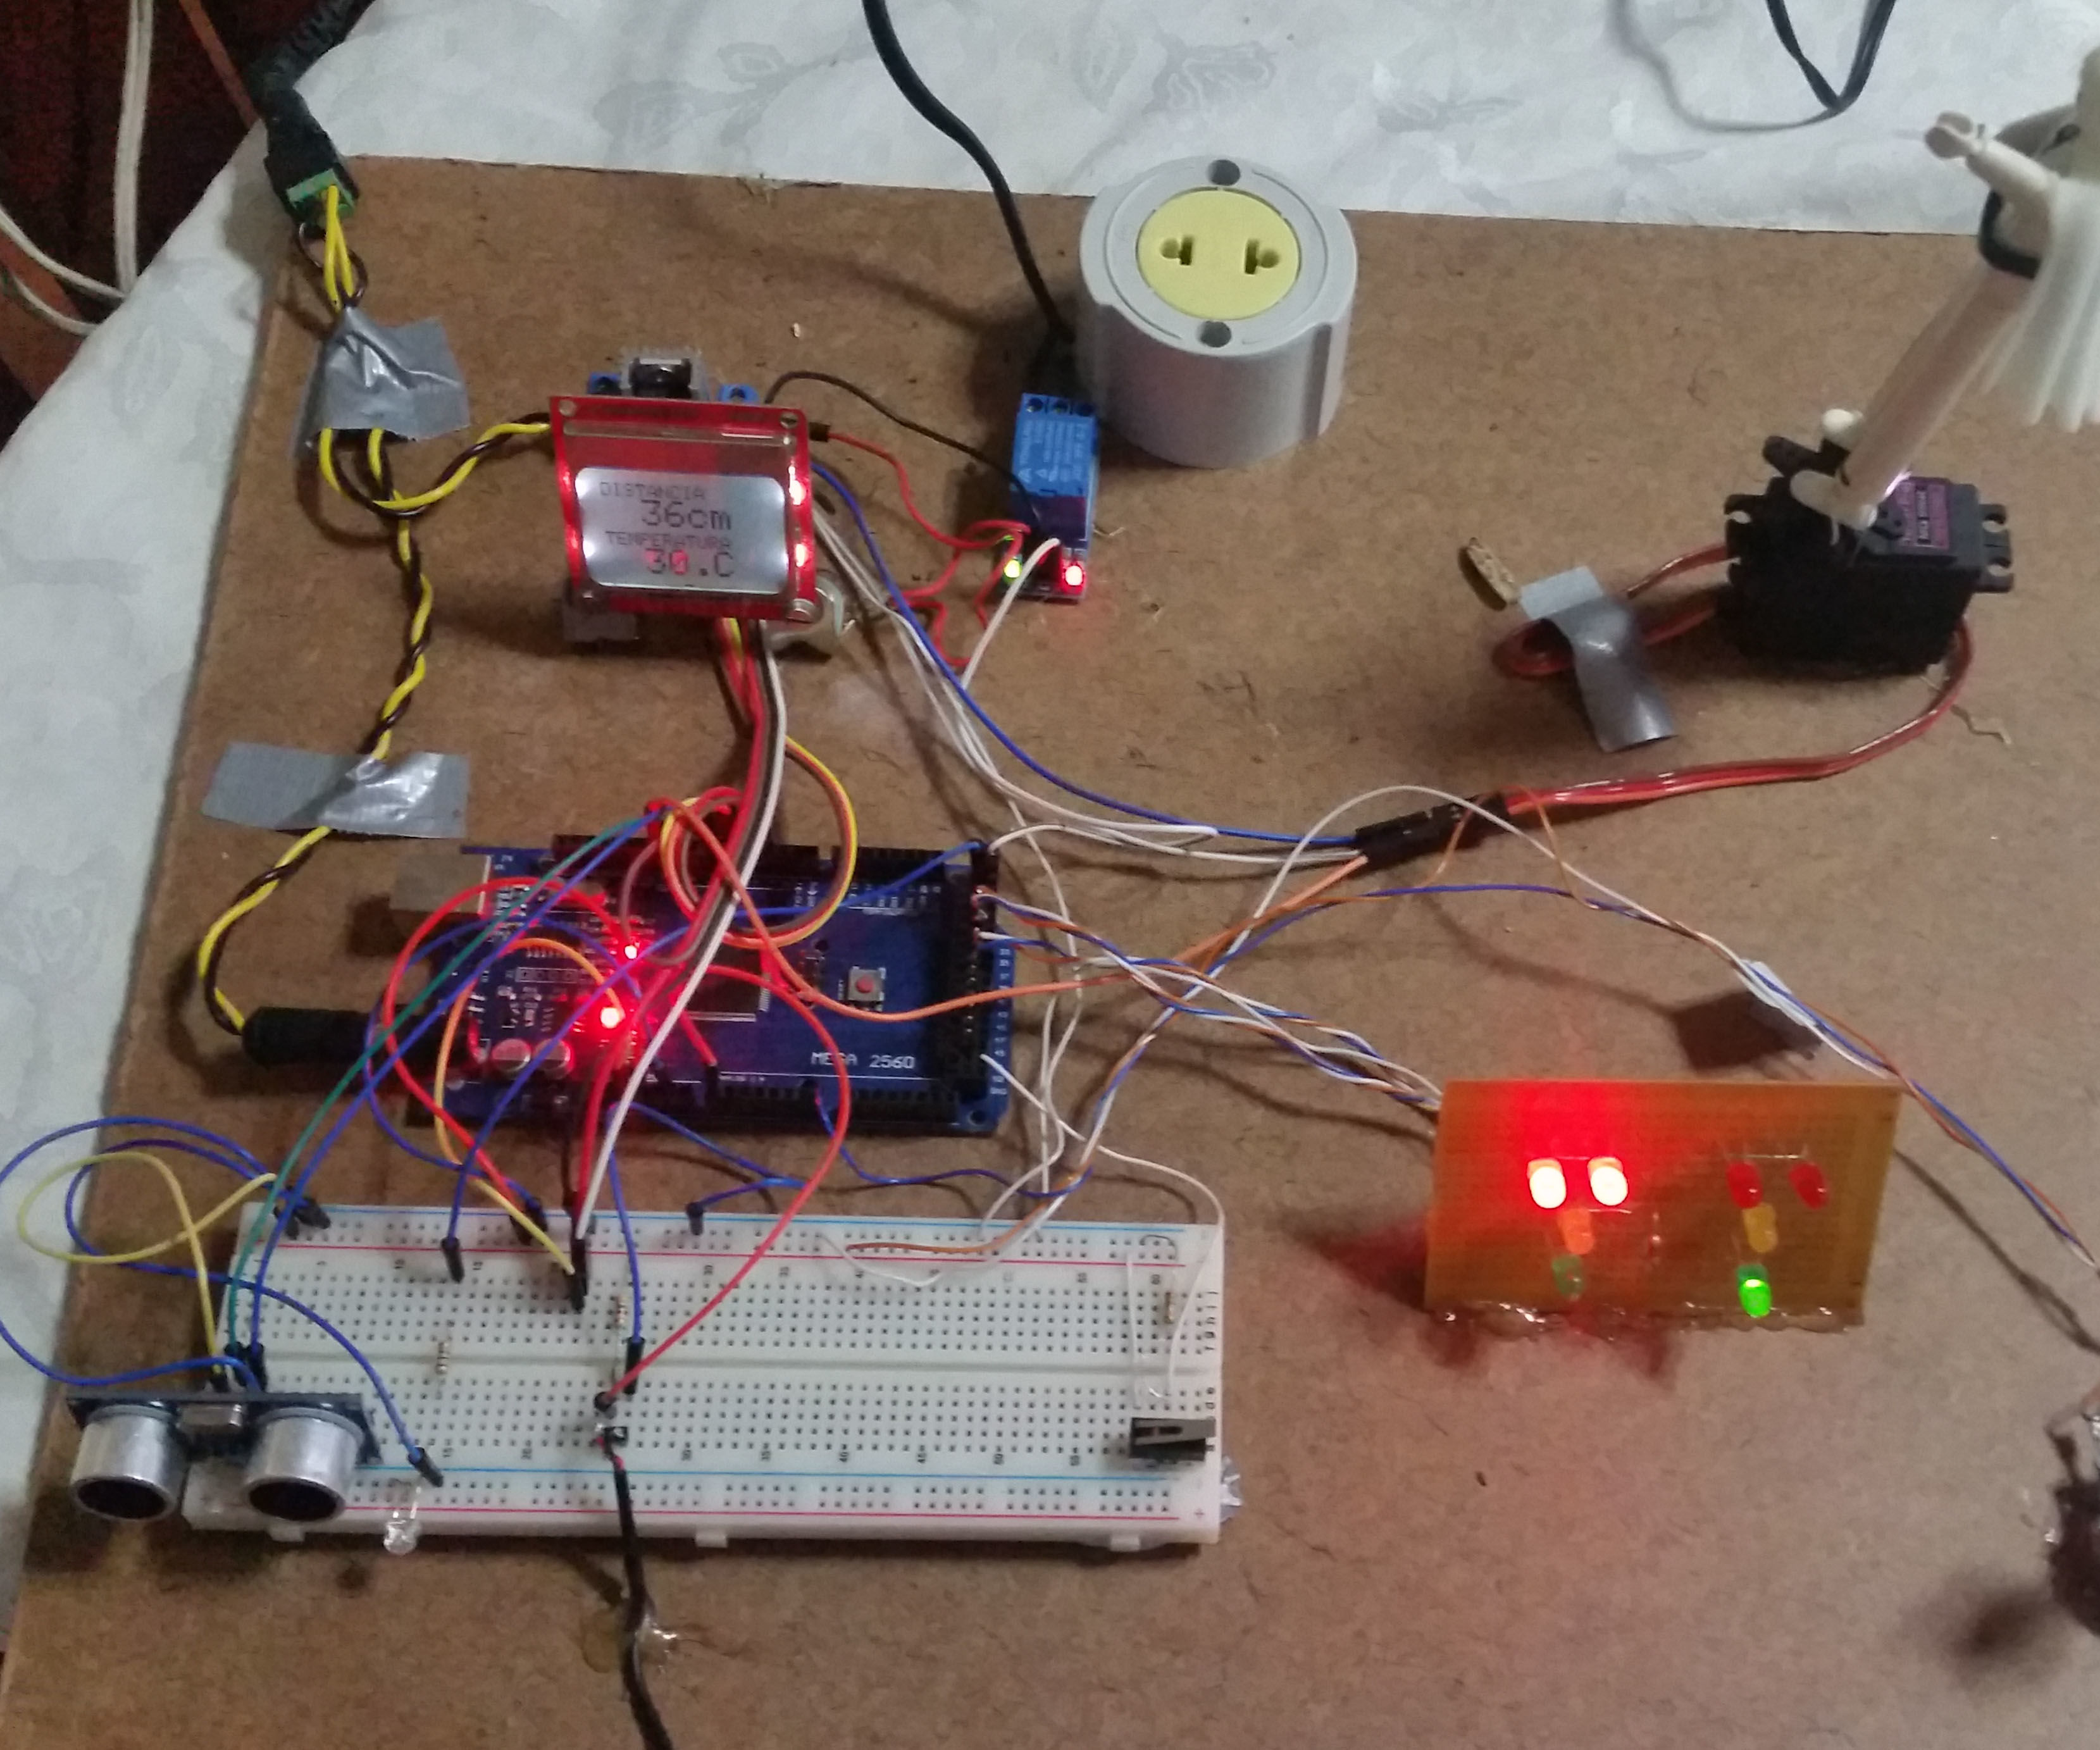 Moisture Sensor Hobby Circuits And Projects